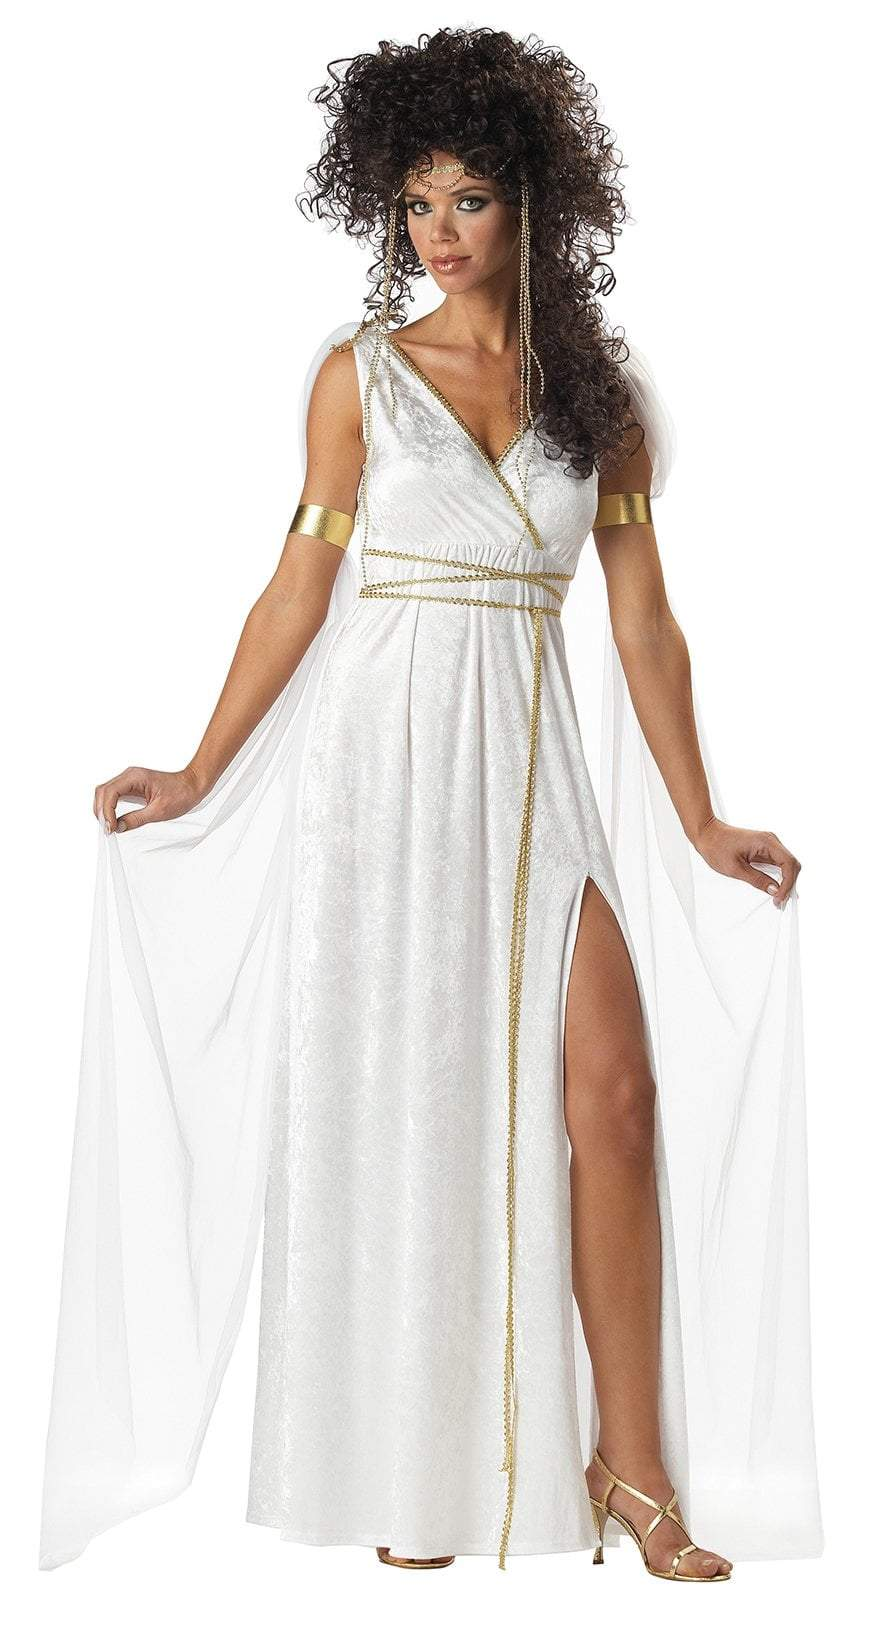 California Costumes Costumes Adult Athenian Goddess Costume